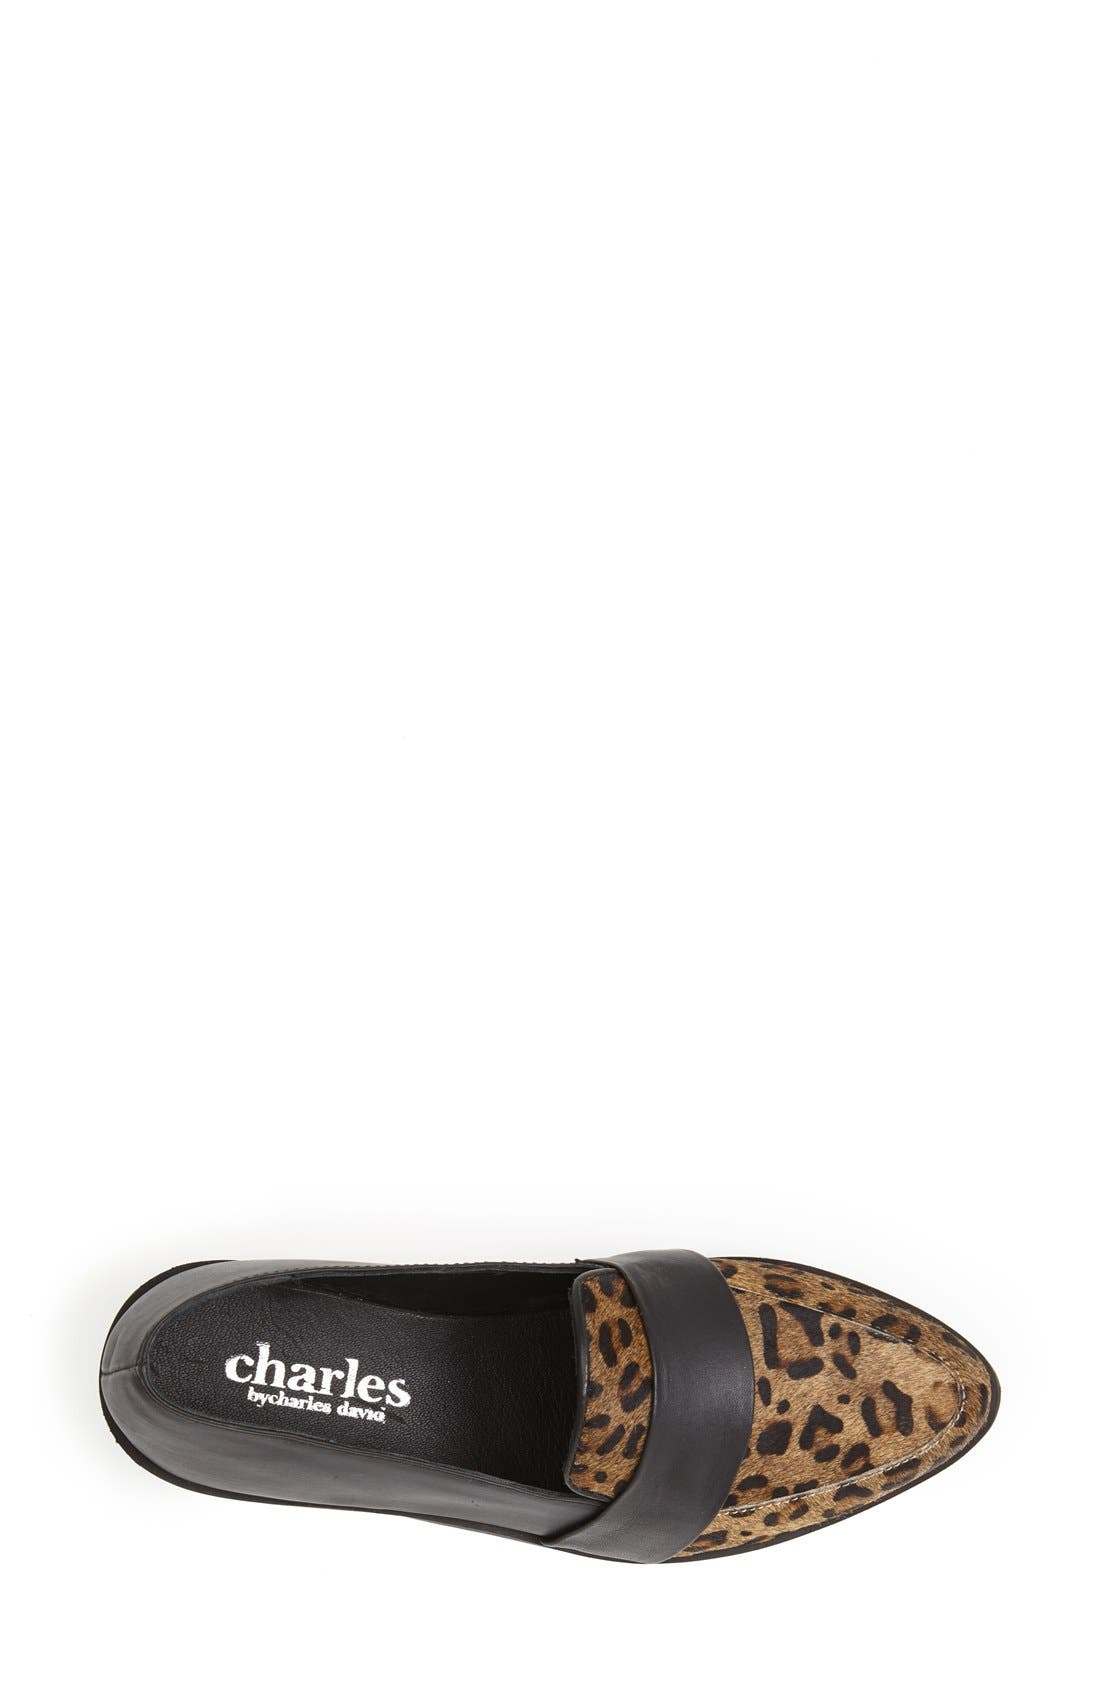 'Baha' Calf Hair and Leather Loafer,                             Alternate thumbnail 3, color,                             Black Leopard